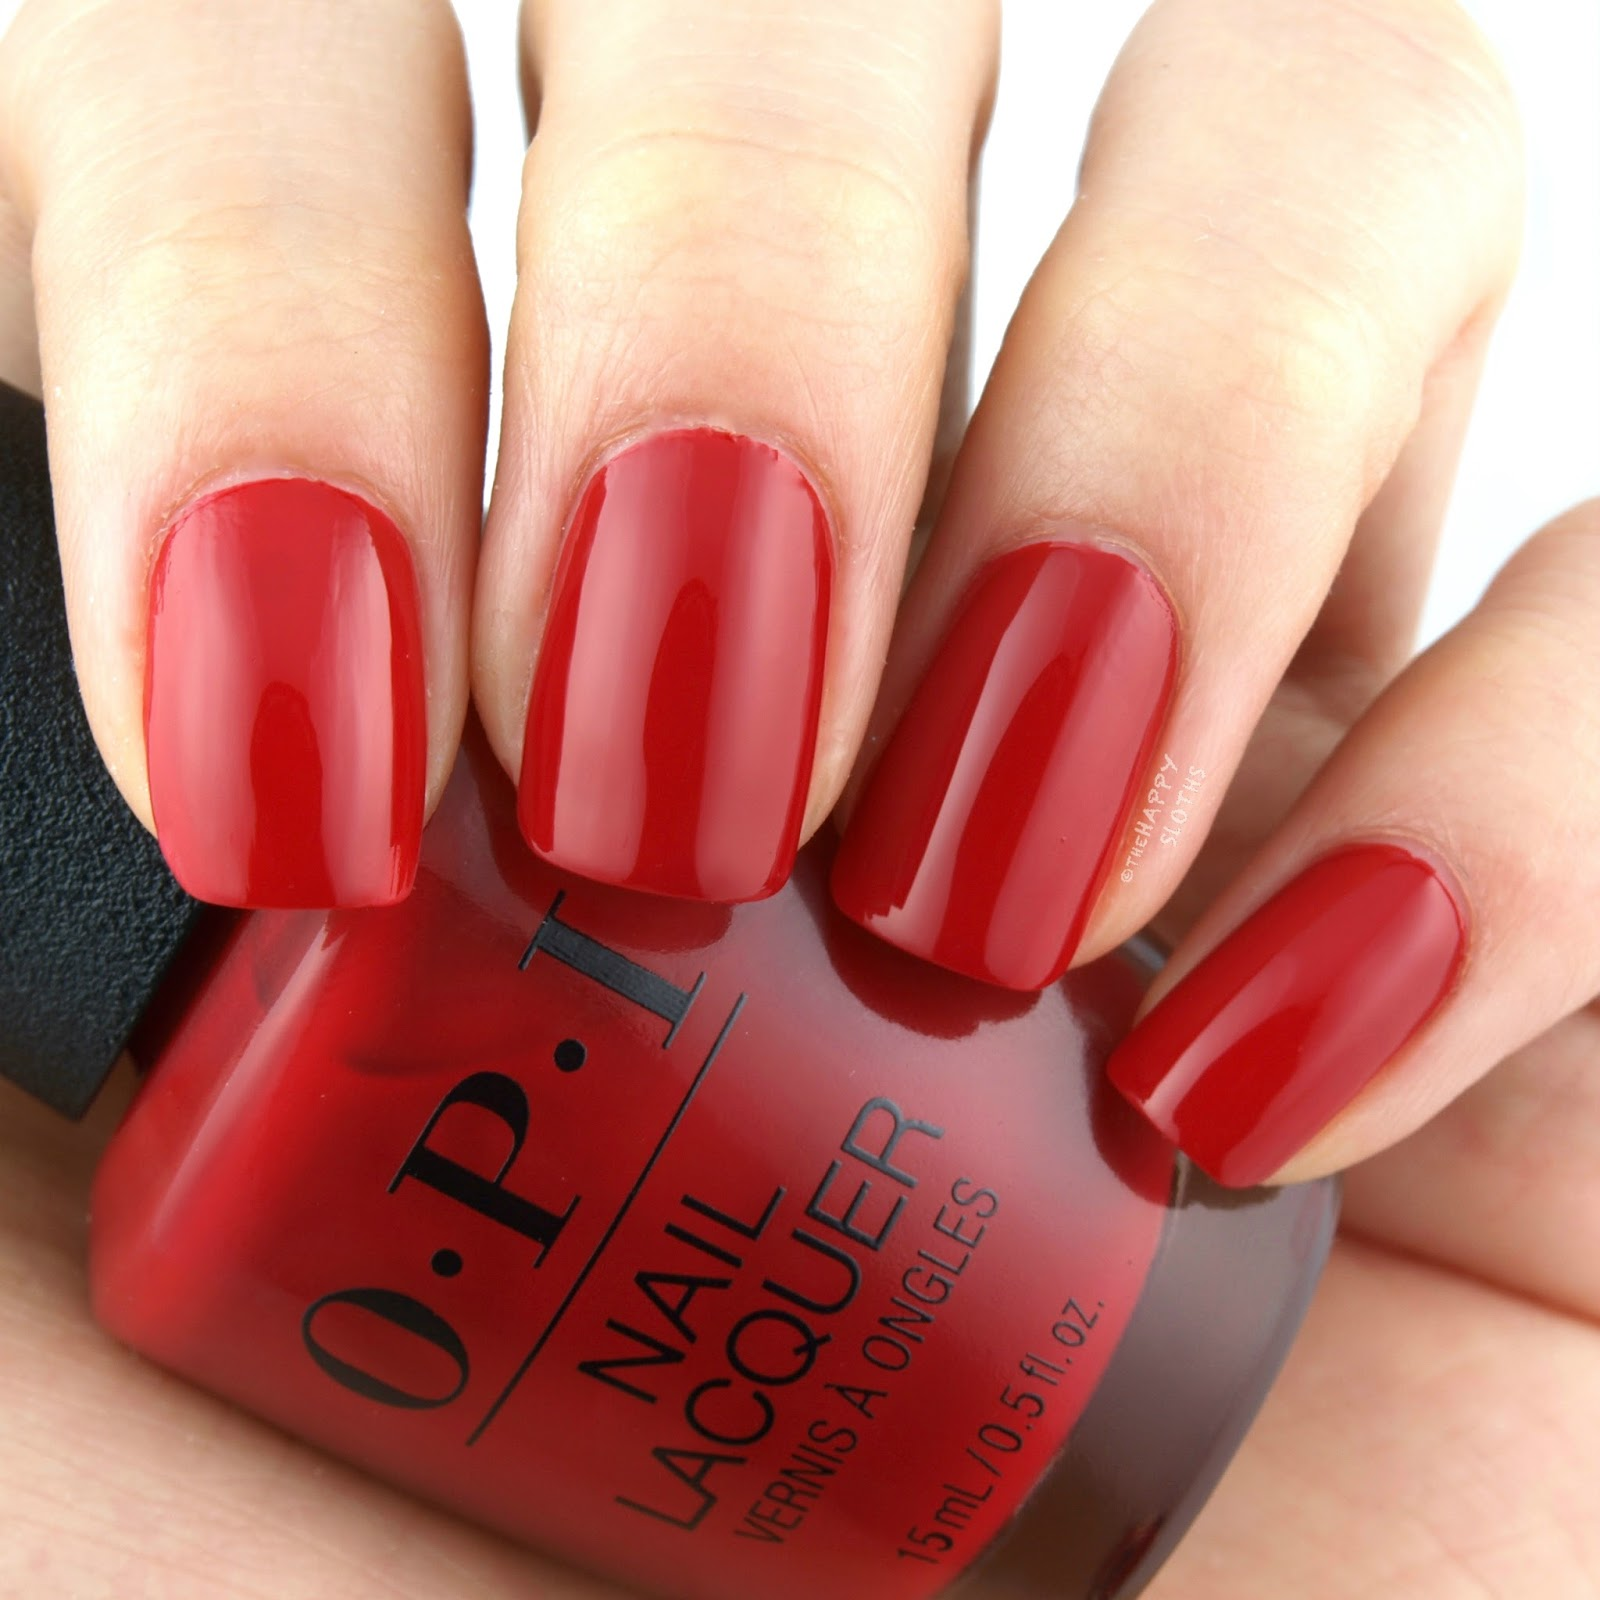 OPI Grease Collection | Tell Me About It Stud: Review and Swatches